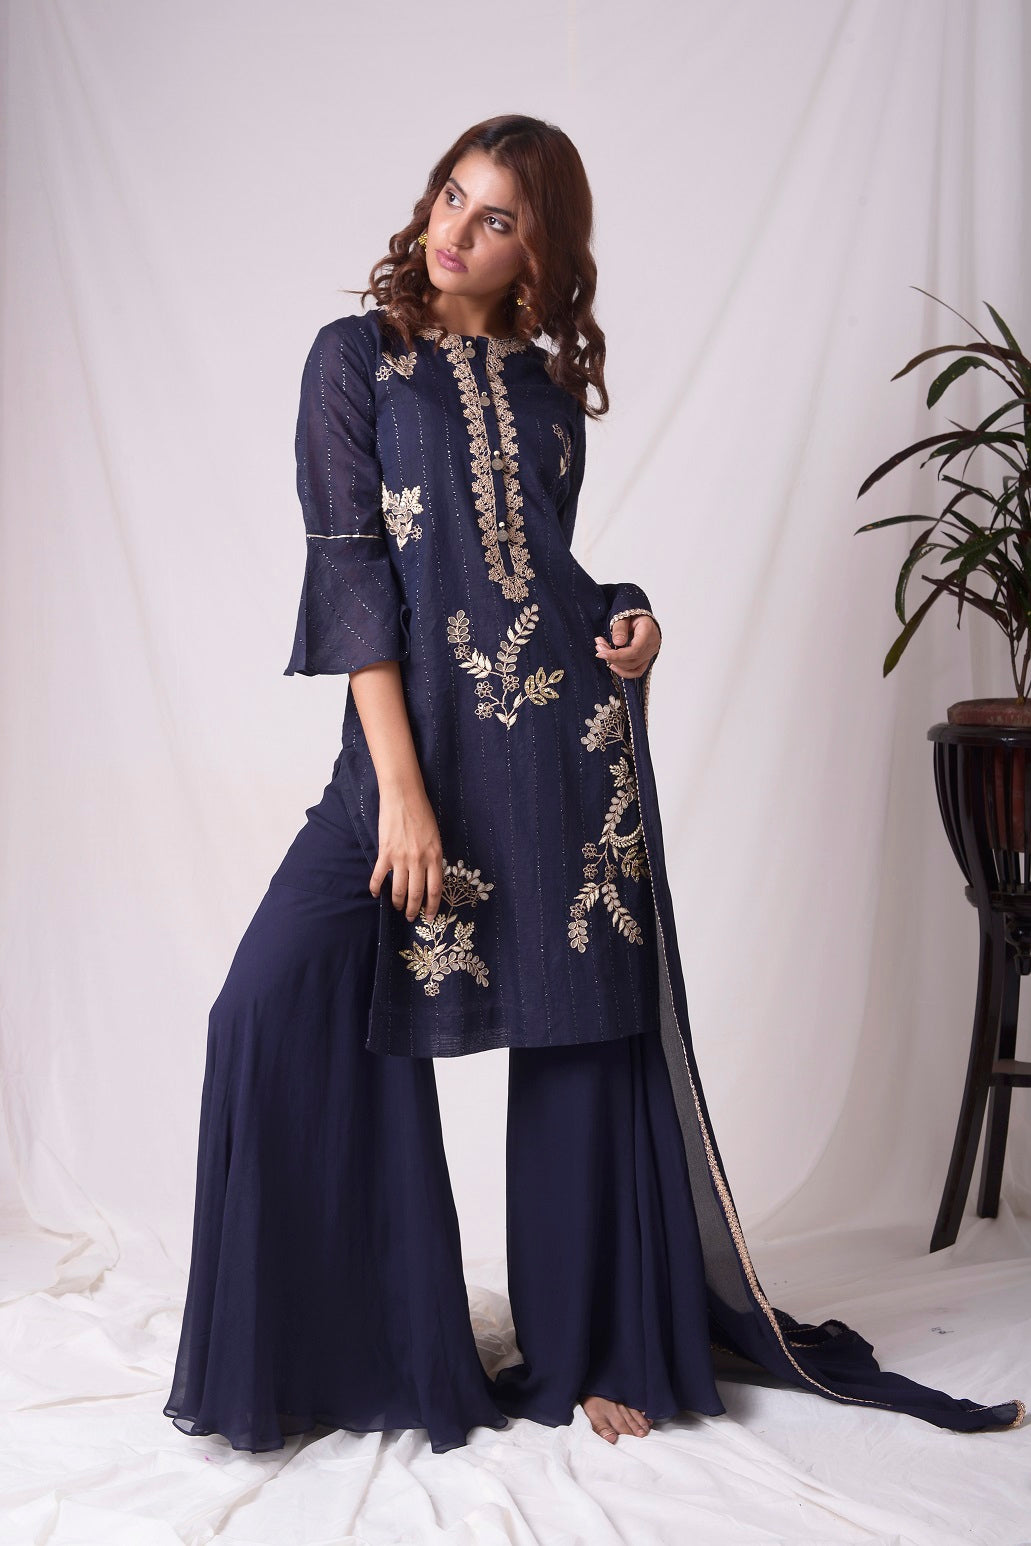 Cobalt Blue Chanderi With Gota Patti Work Suit Online in USA-full view-2